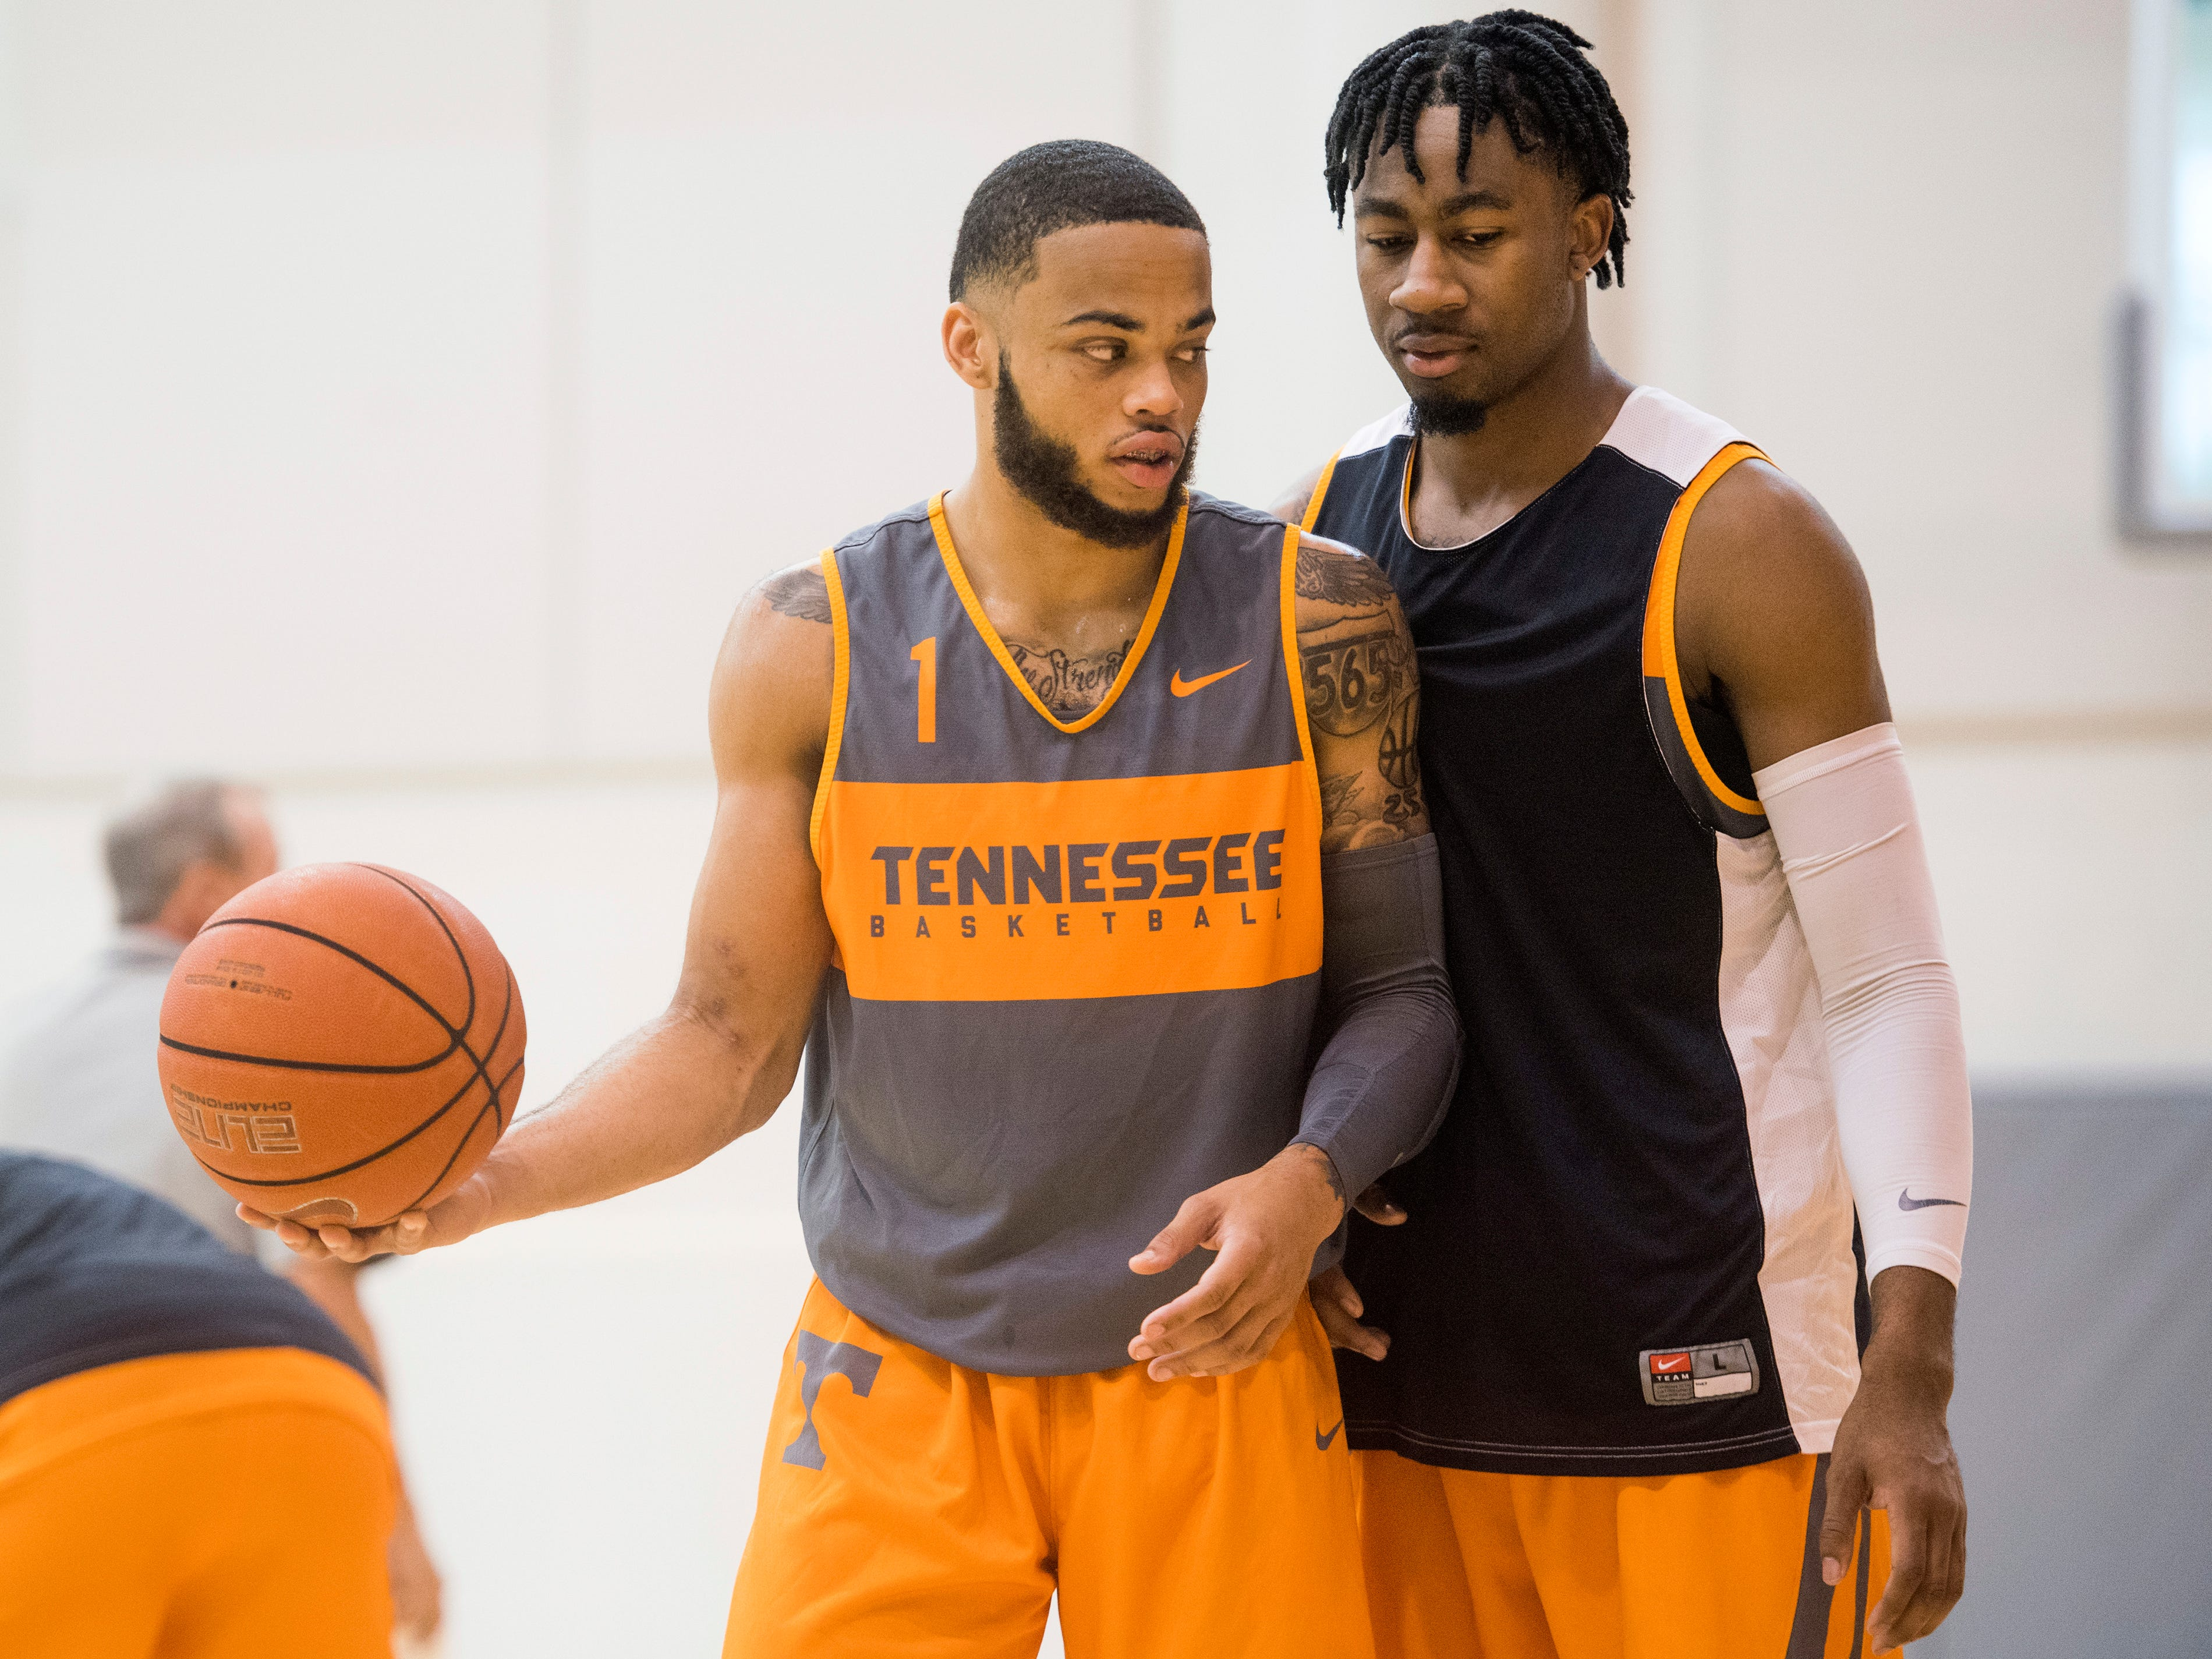 Tennessee guard Lamonte Turner (1) and guard Jordan Bowden (23) during basketball practice at Pratt Pavilion on the University of Tennessee's campus on Thursday, October 4, 2018.